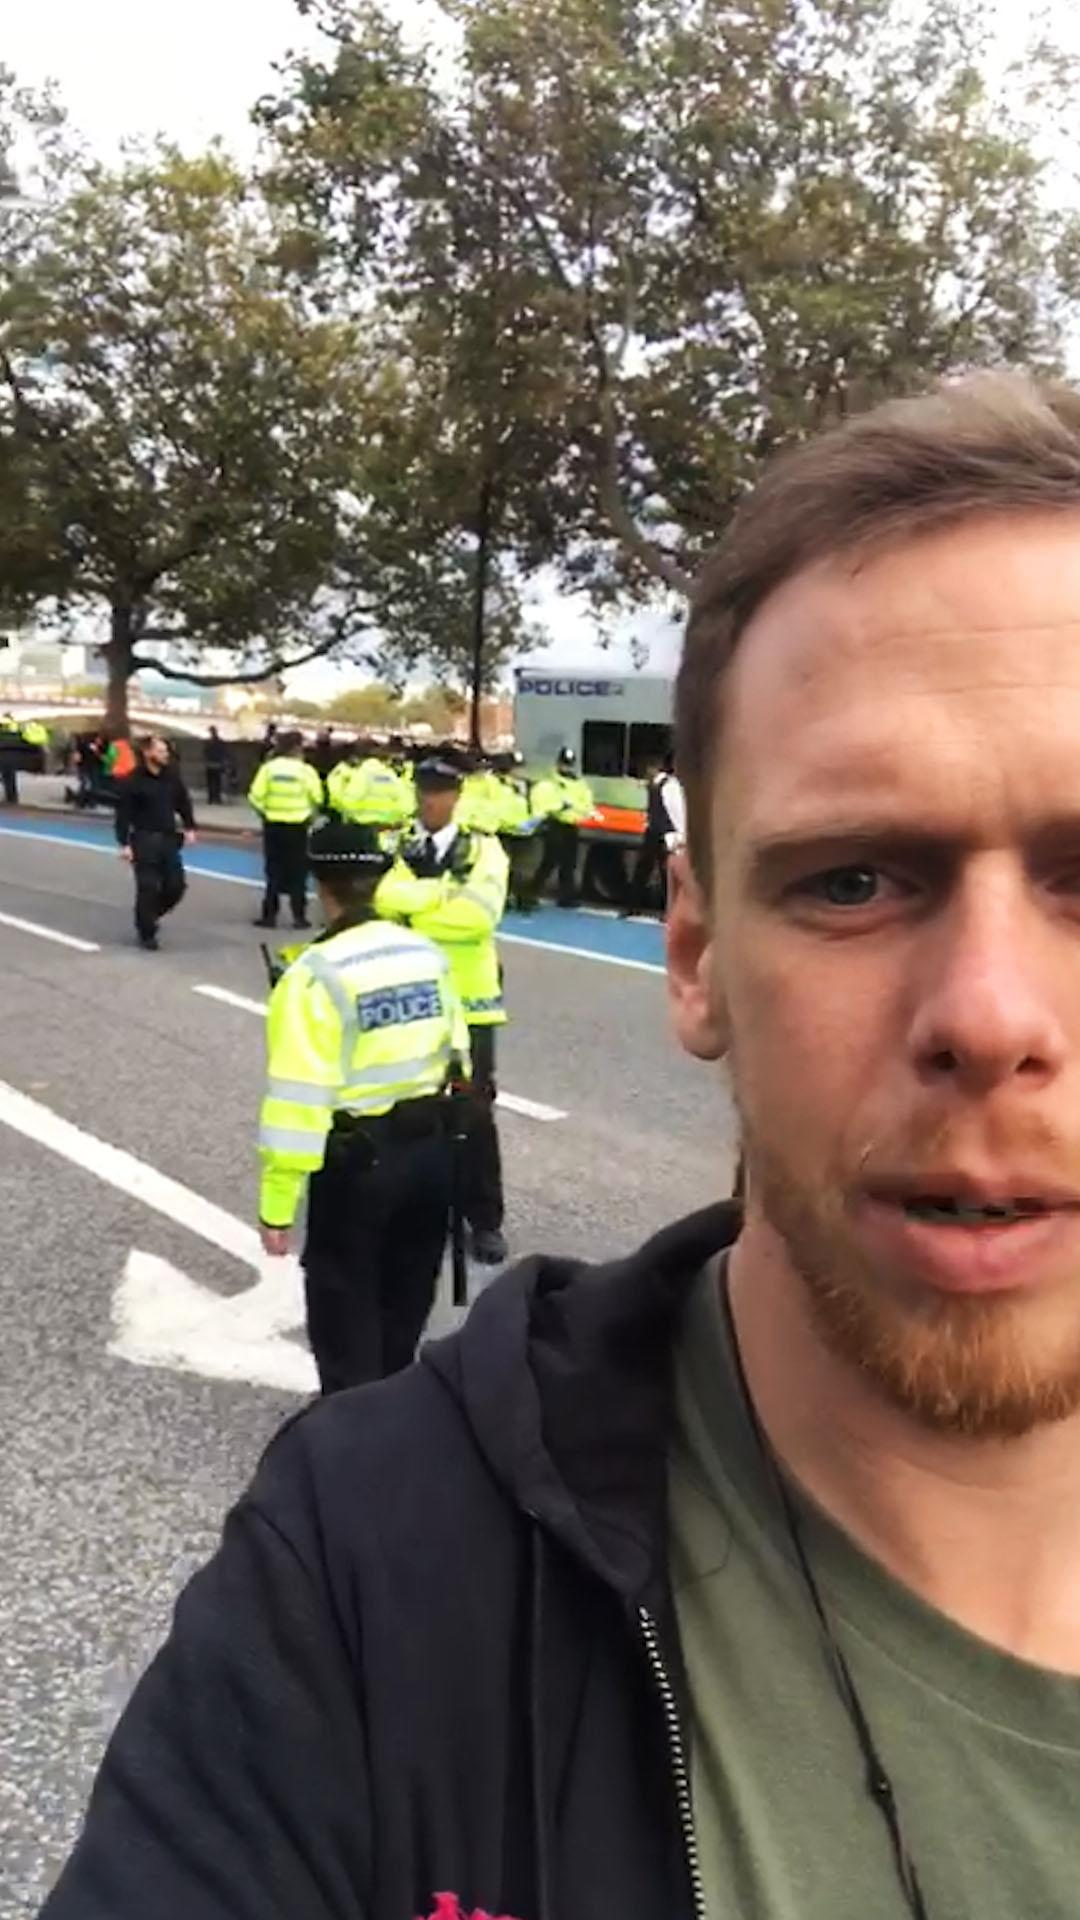 A Day In The Life Of An Extinction Rebellion Protestor